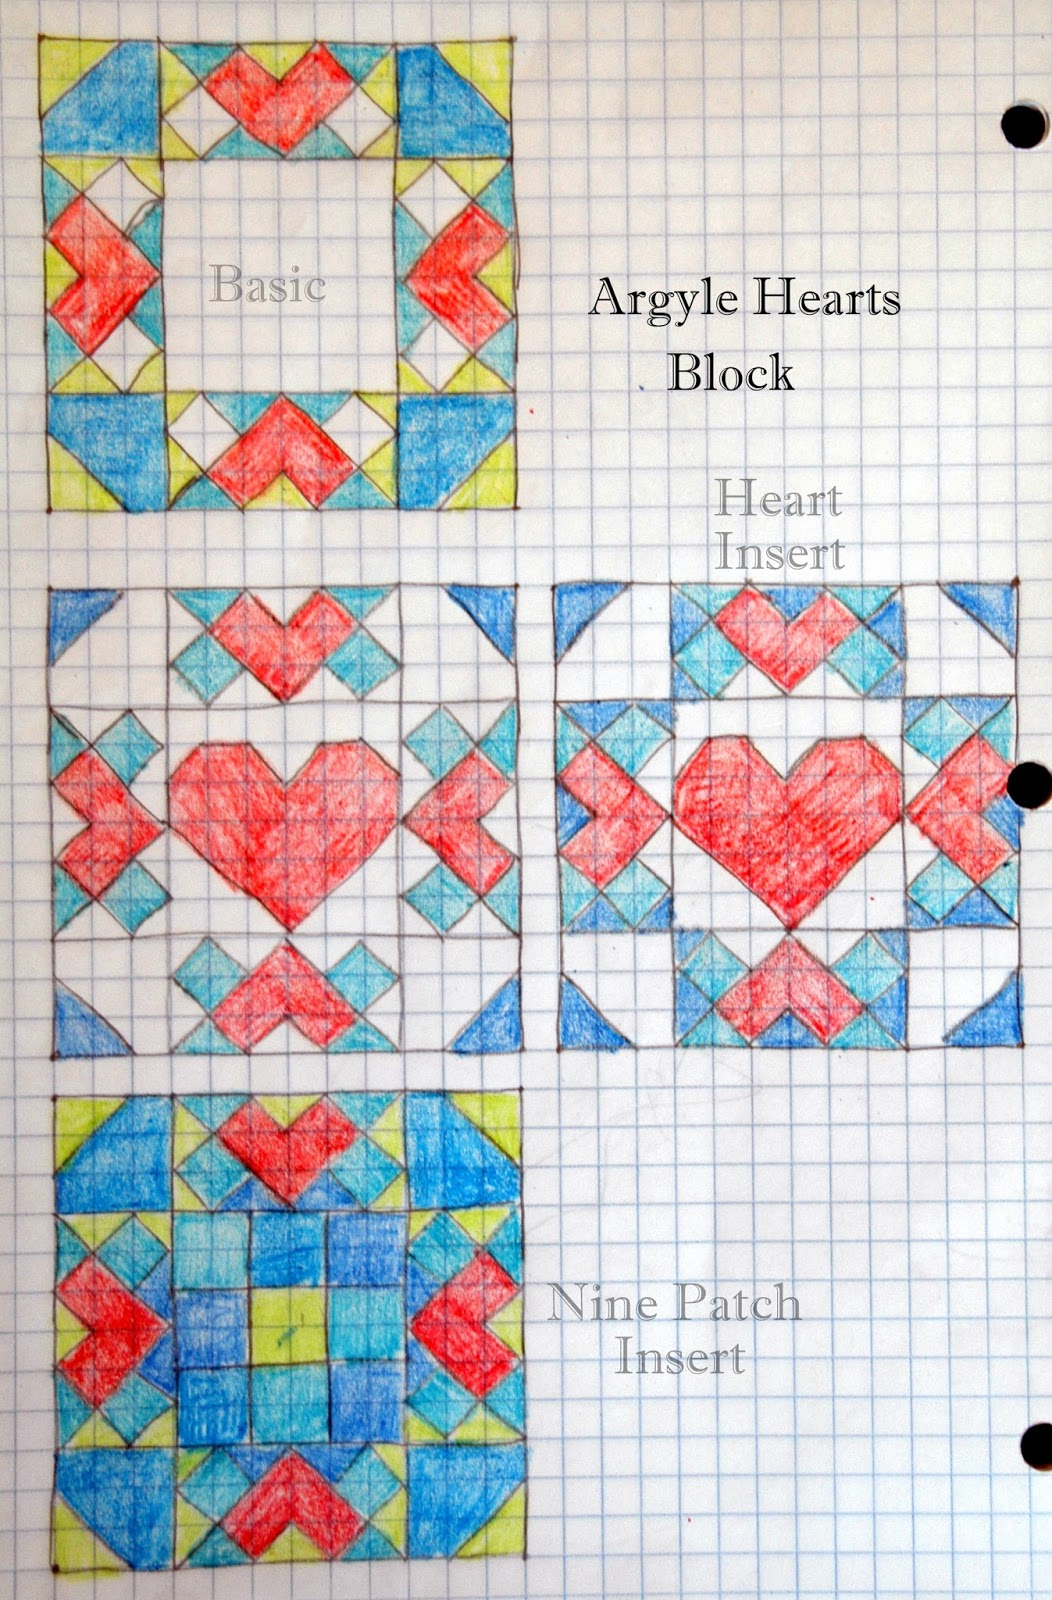 Quilt Patterns On Graph Paper : Modern Magnolia Studio: Fabri-Quilt Block Hop - Argyle Hearts Quilt Block Tutorial